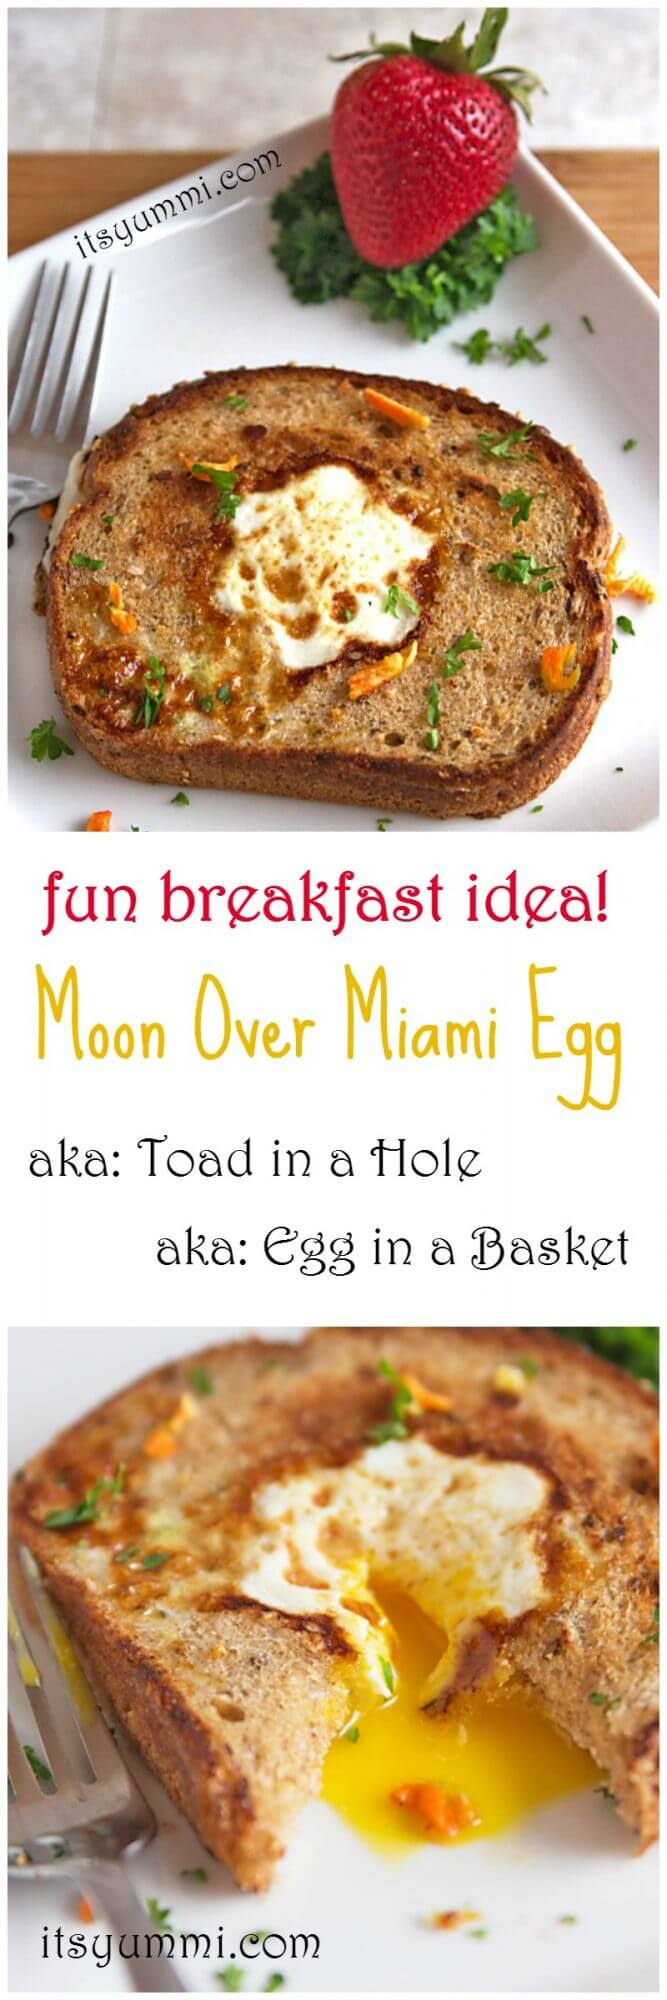 Moon Over Miami Egg - This is a classic fried egg breakfast! Also known as Toad in a Hole or Bird in a Nest, it's a cage-free egg that's cooked inside of whole grain, Harvest Selects Seeded Bread from @PepperidgeFarm - Get the recipe from @itsyummi (AD)